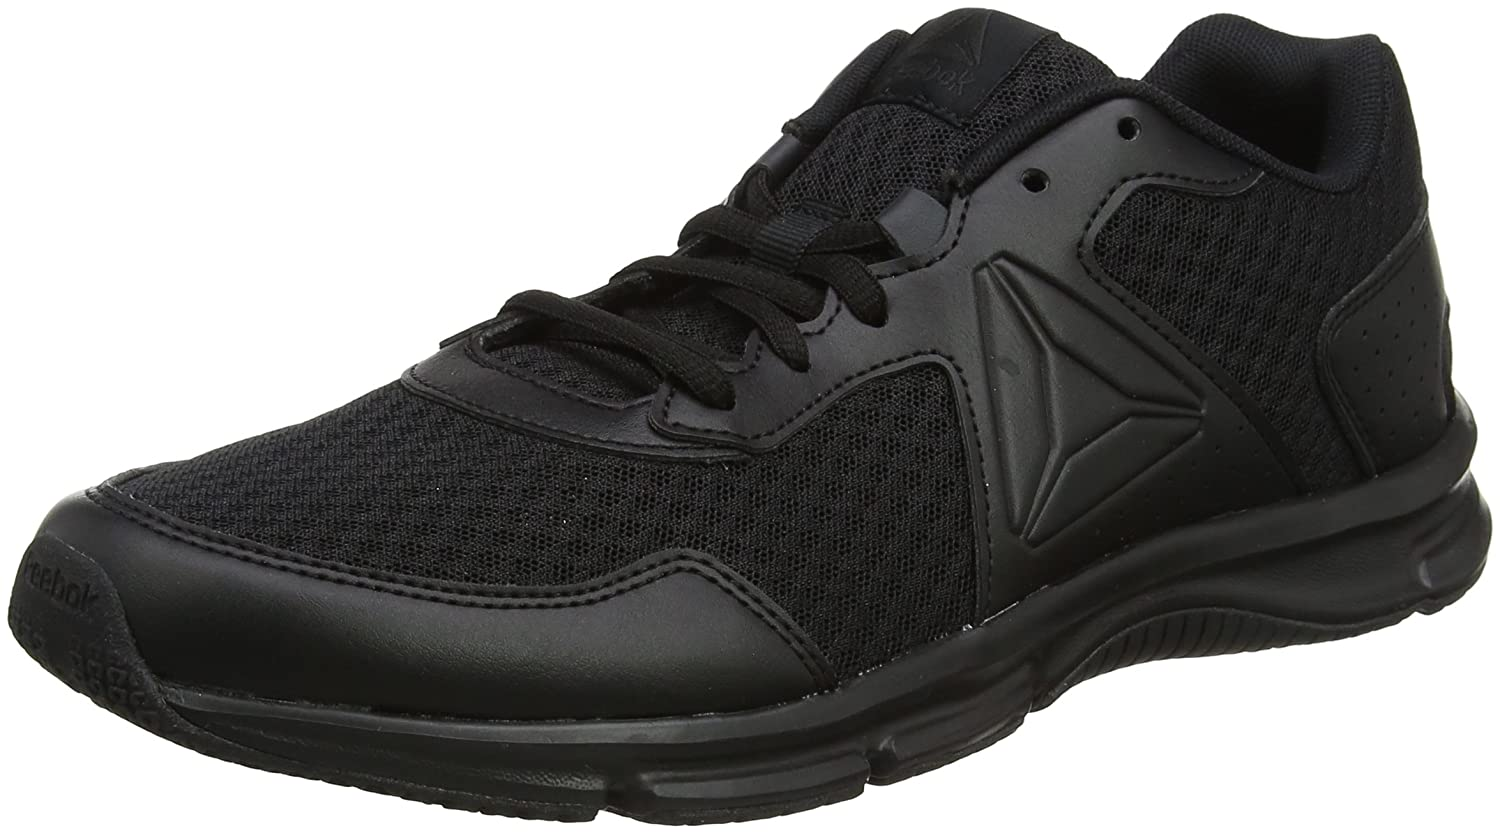 Borse Da Uomo it Reebok Corsa Express Runner Amazon E Scarpe qCBPAa c18855d48